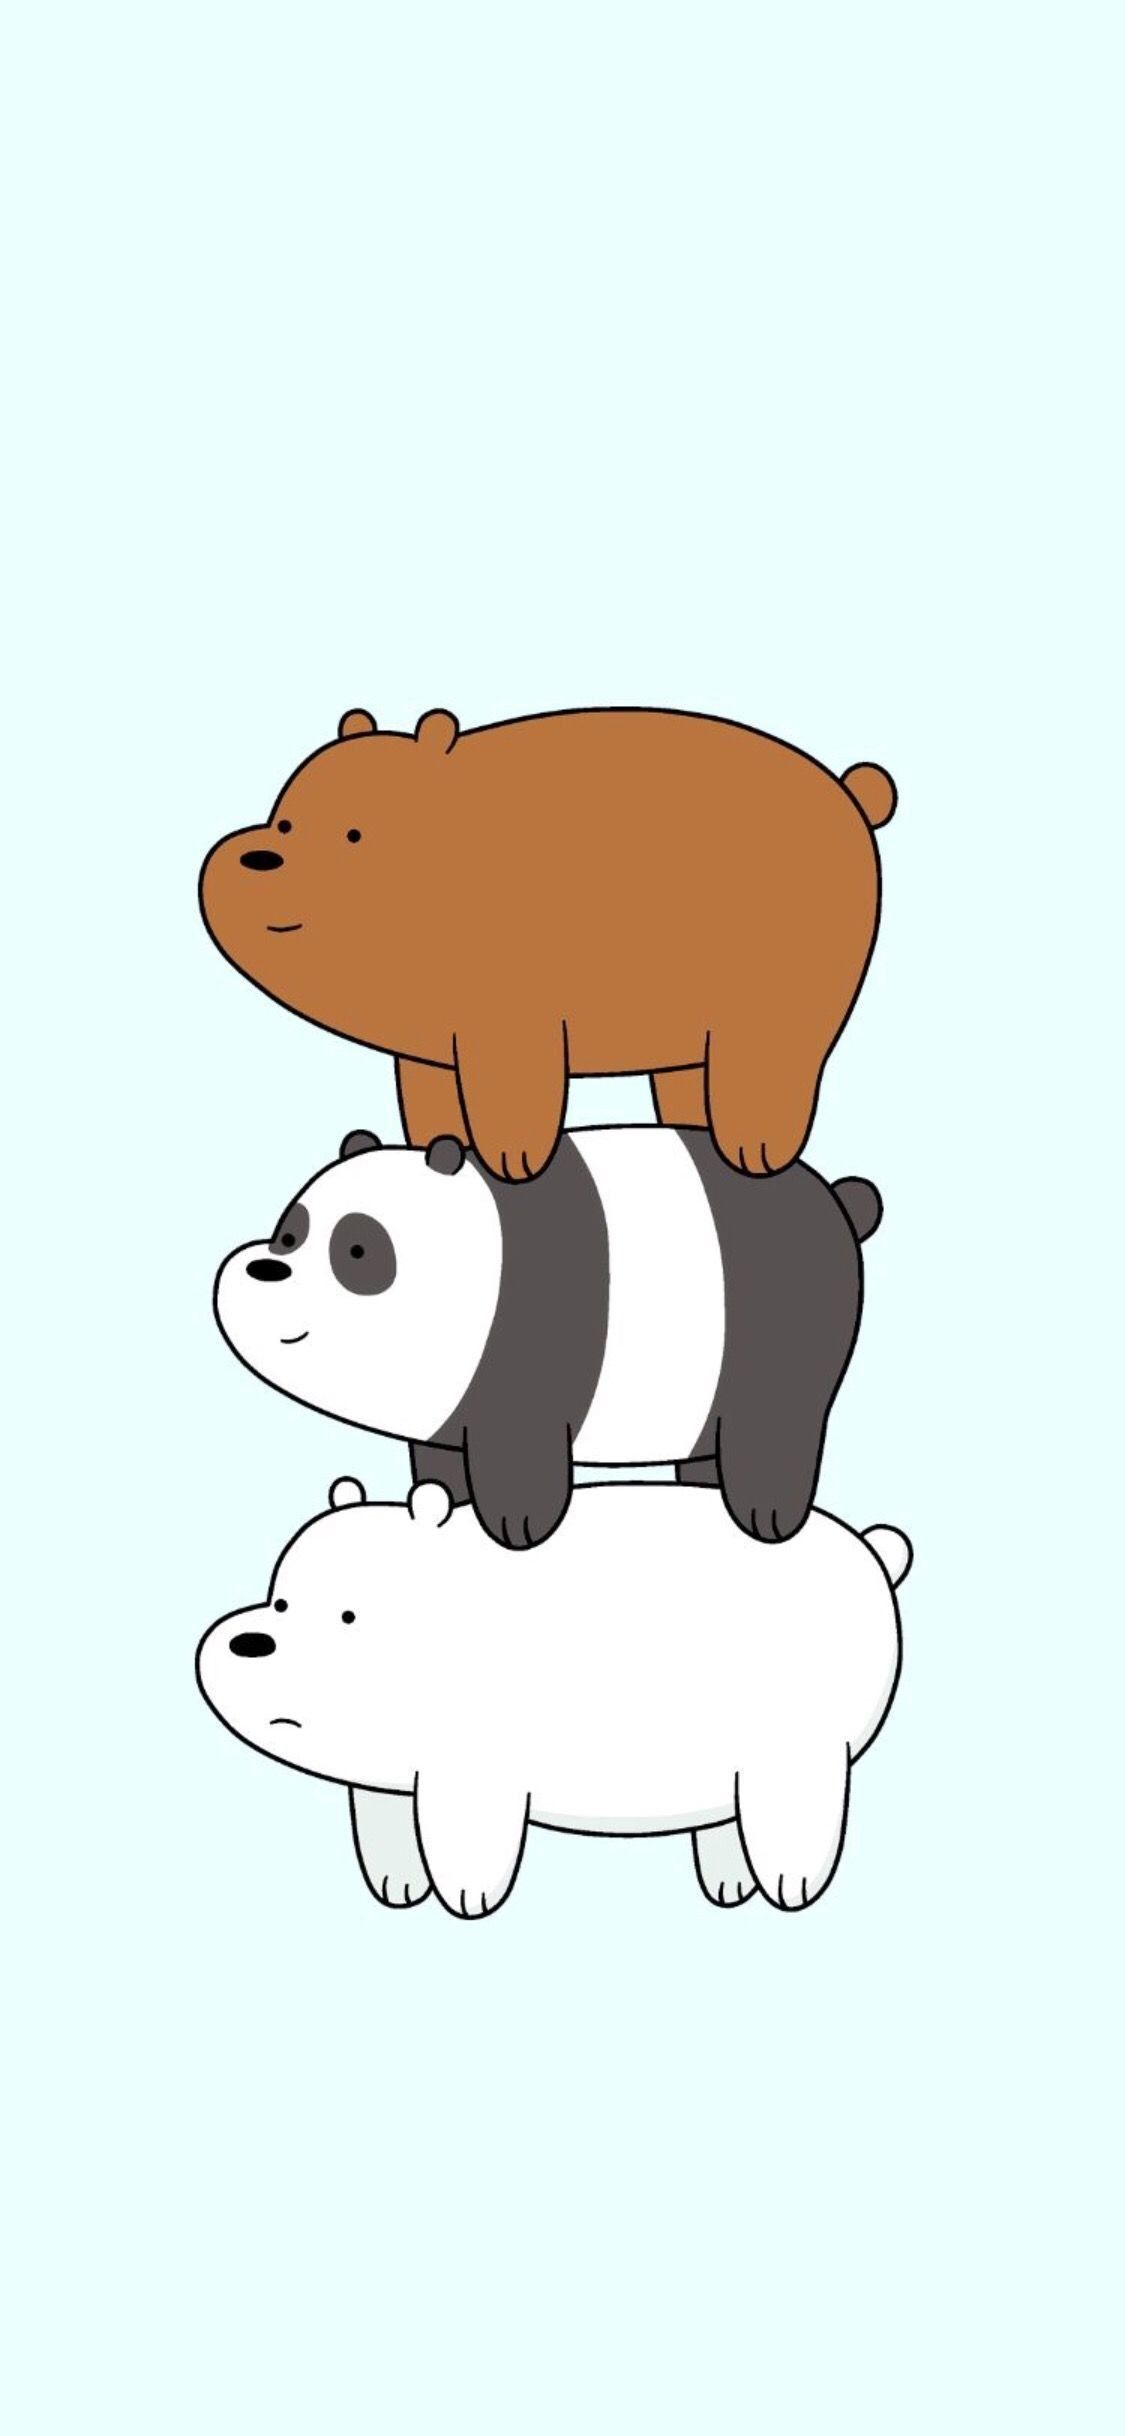 1125x2436 We Bare Bears Wallpaper For Iphone X A We Bare Bears Wallpapers Bear Wallpaper Ice Bear We Bare Bears